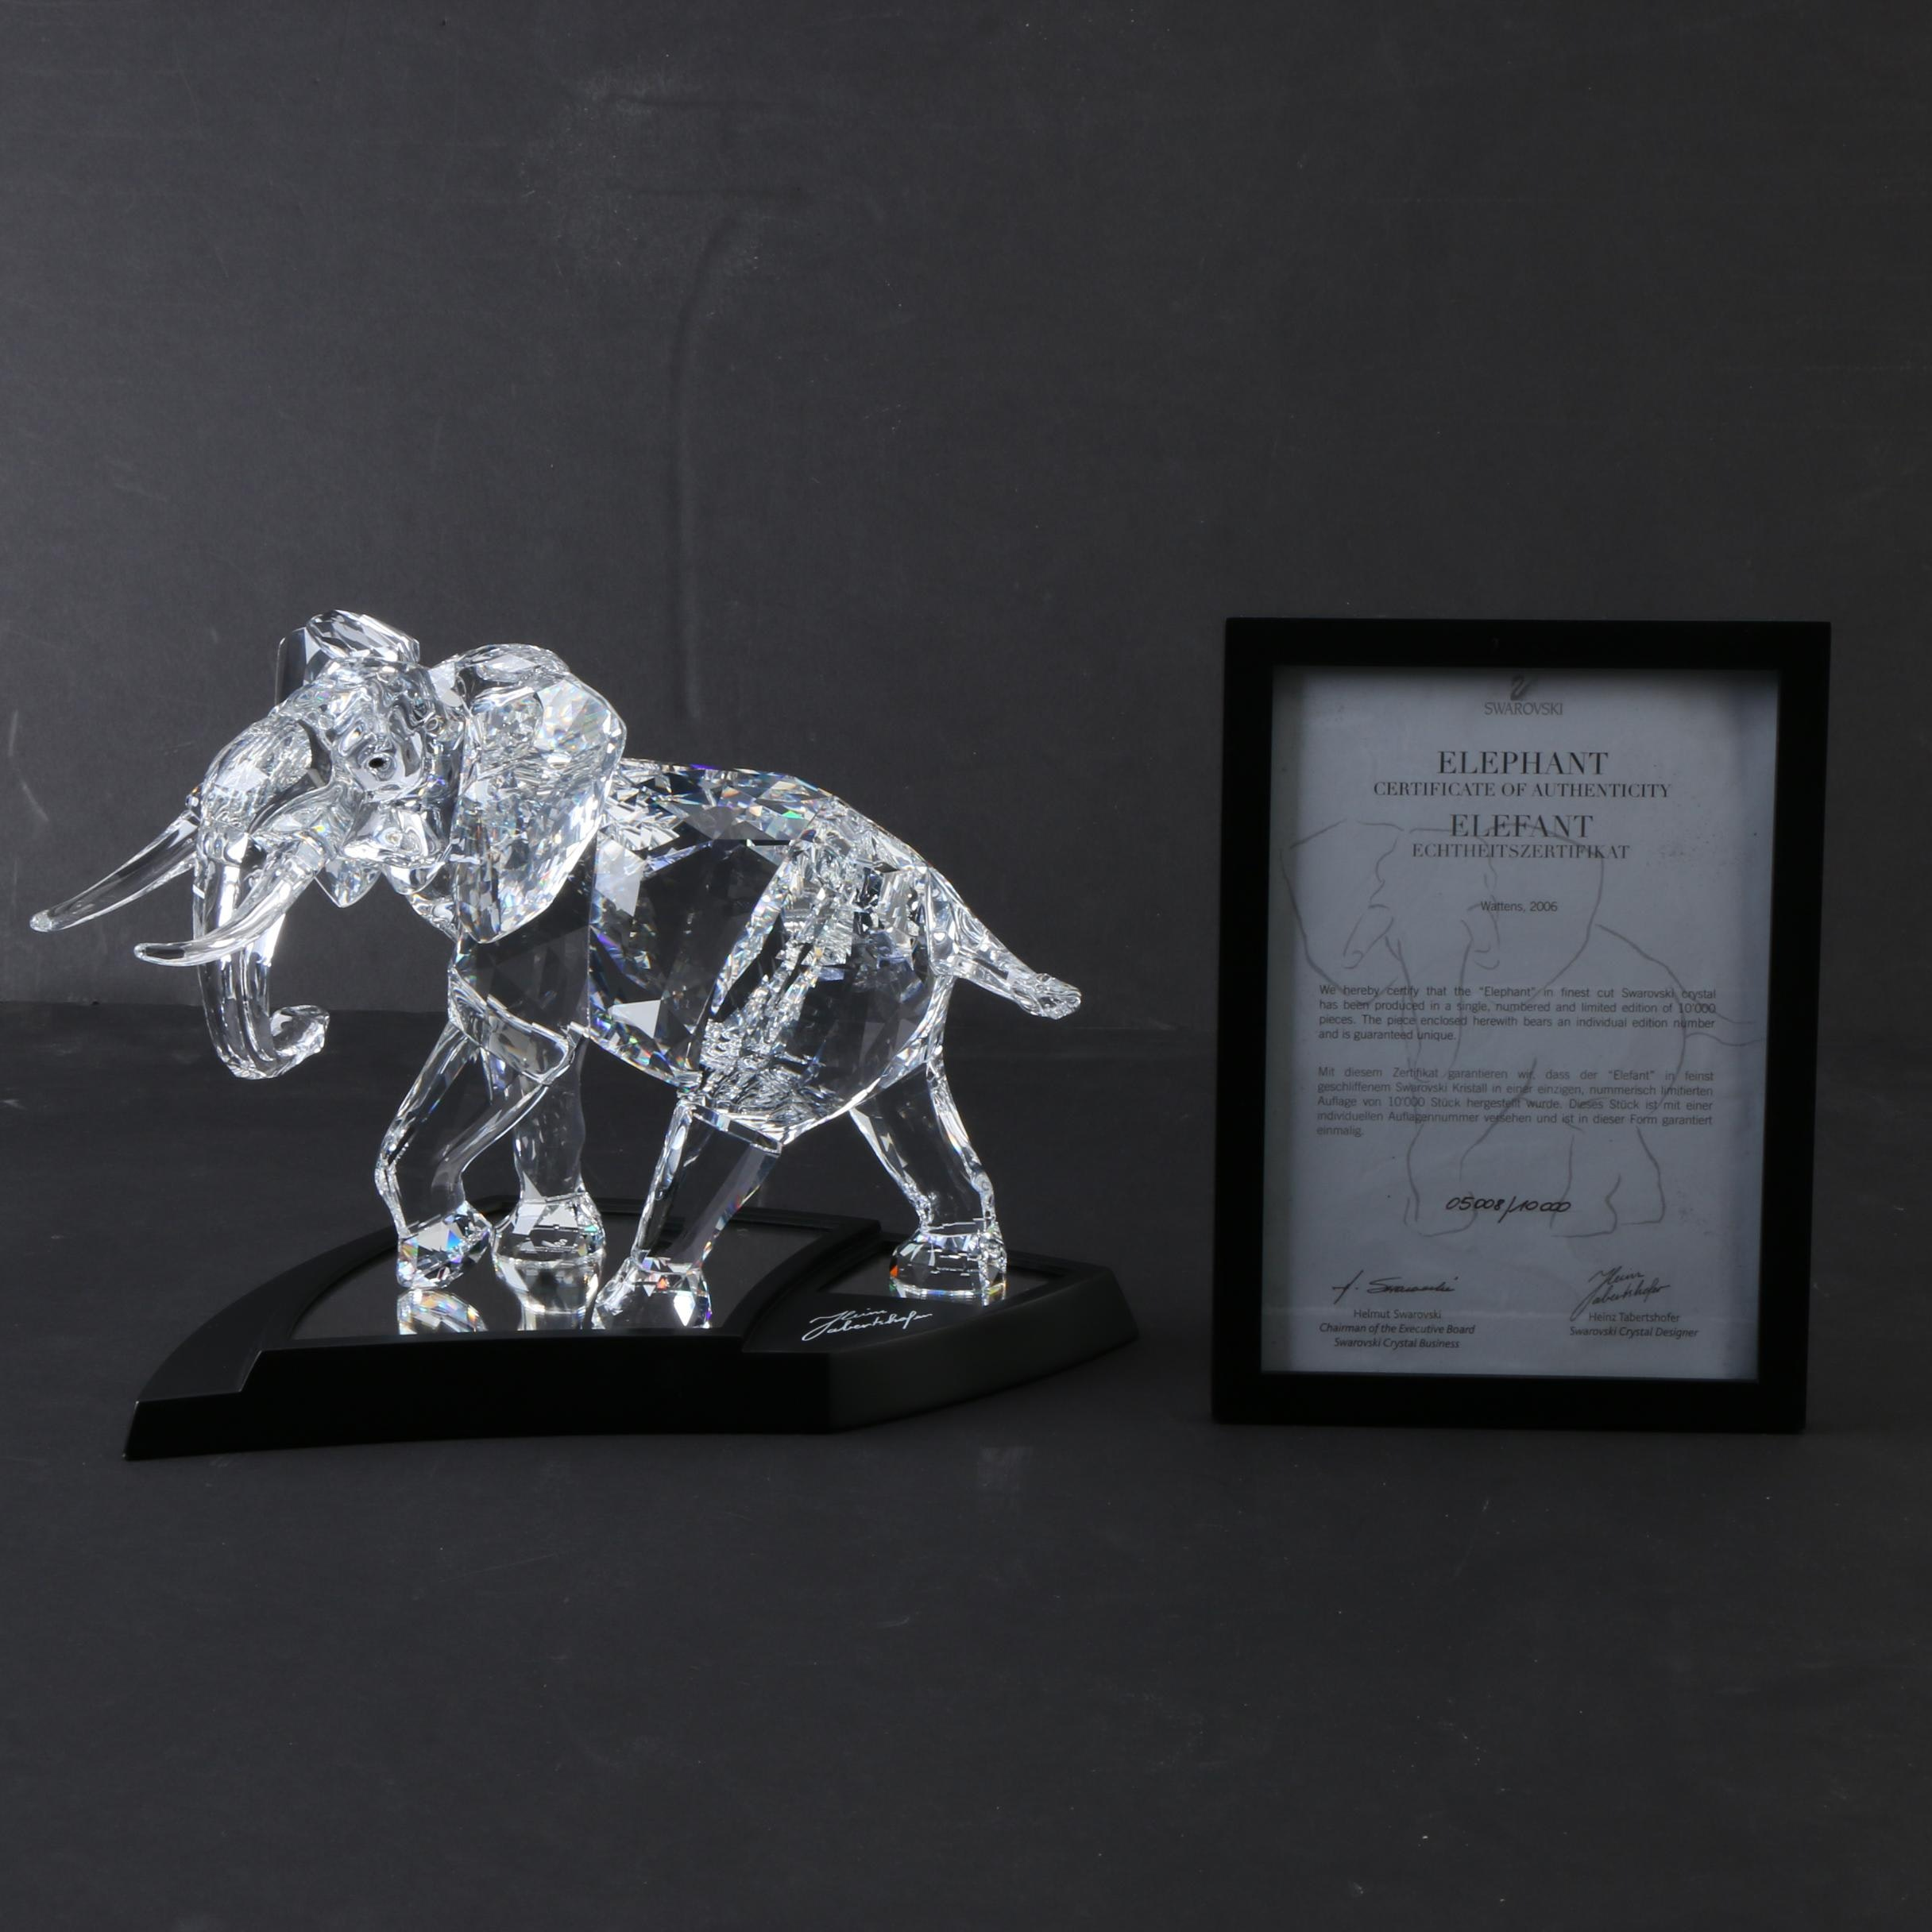 Swarovski 2006 Limited Edition Elephant With Certificate of Authenticity